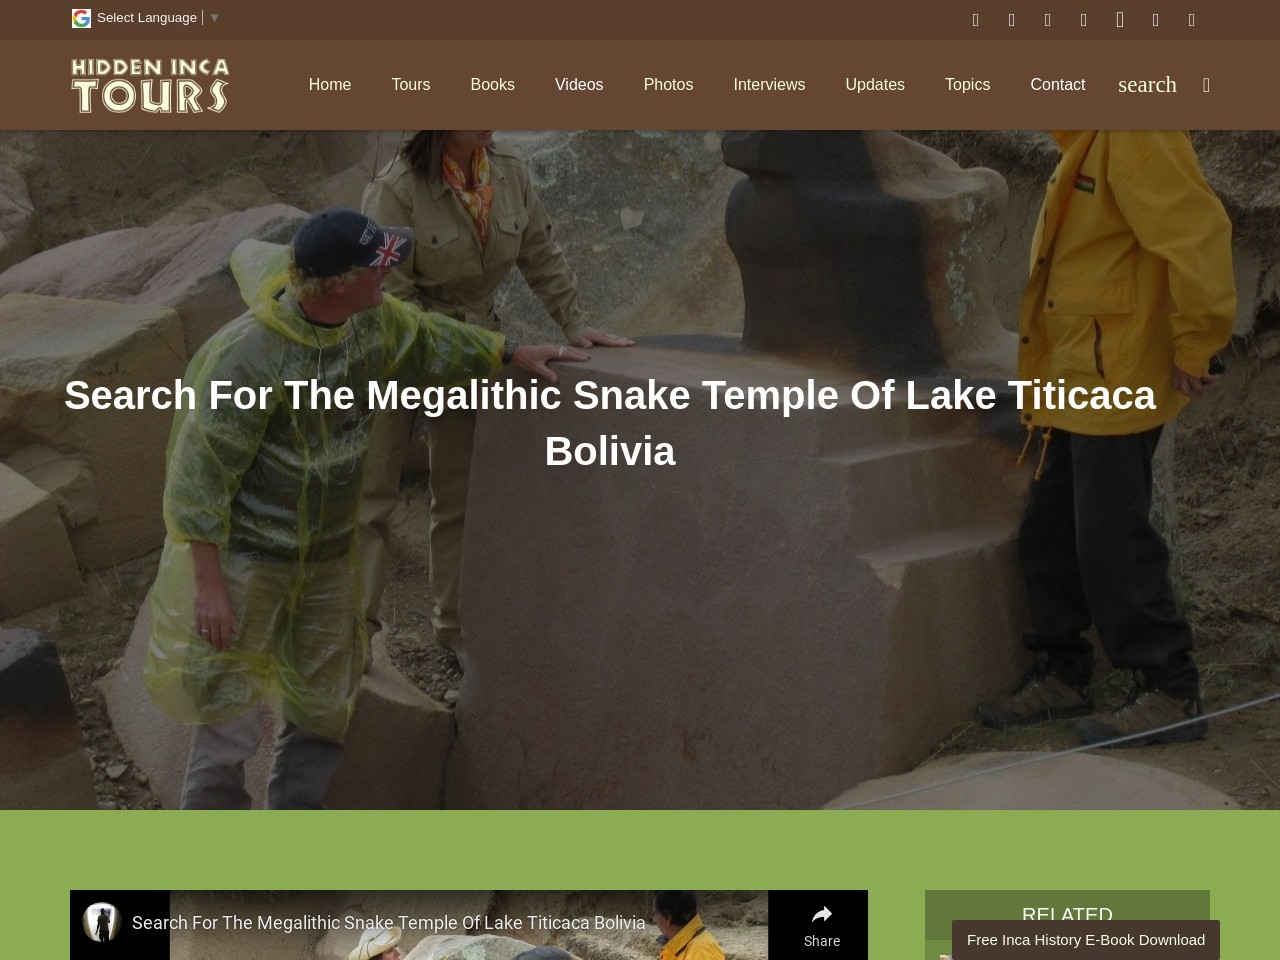 Search For The Megalithic Snake Temple Of Lake Titicaca Bolivia